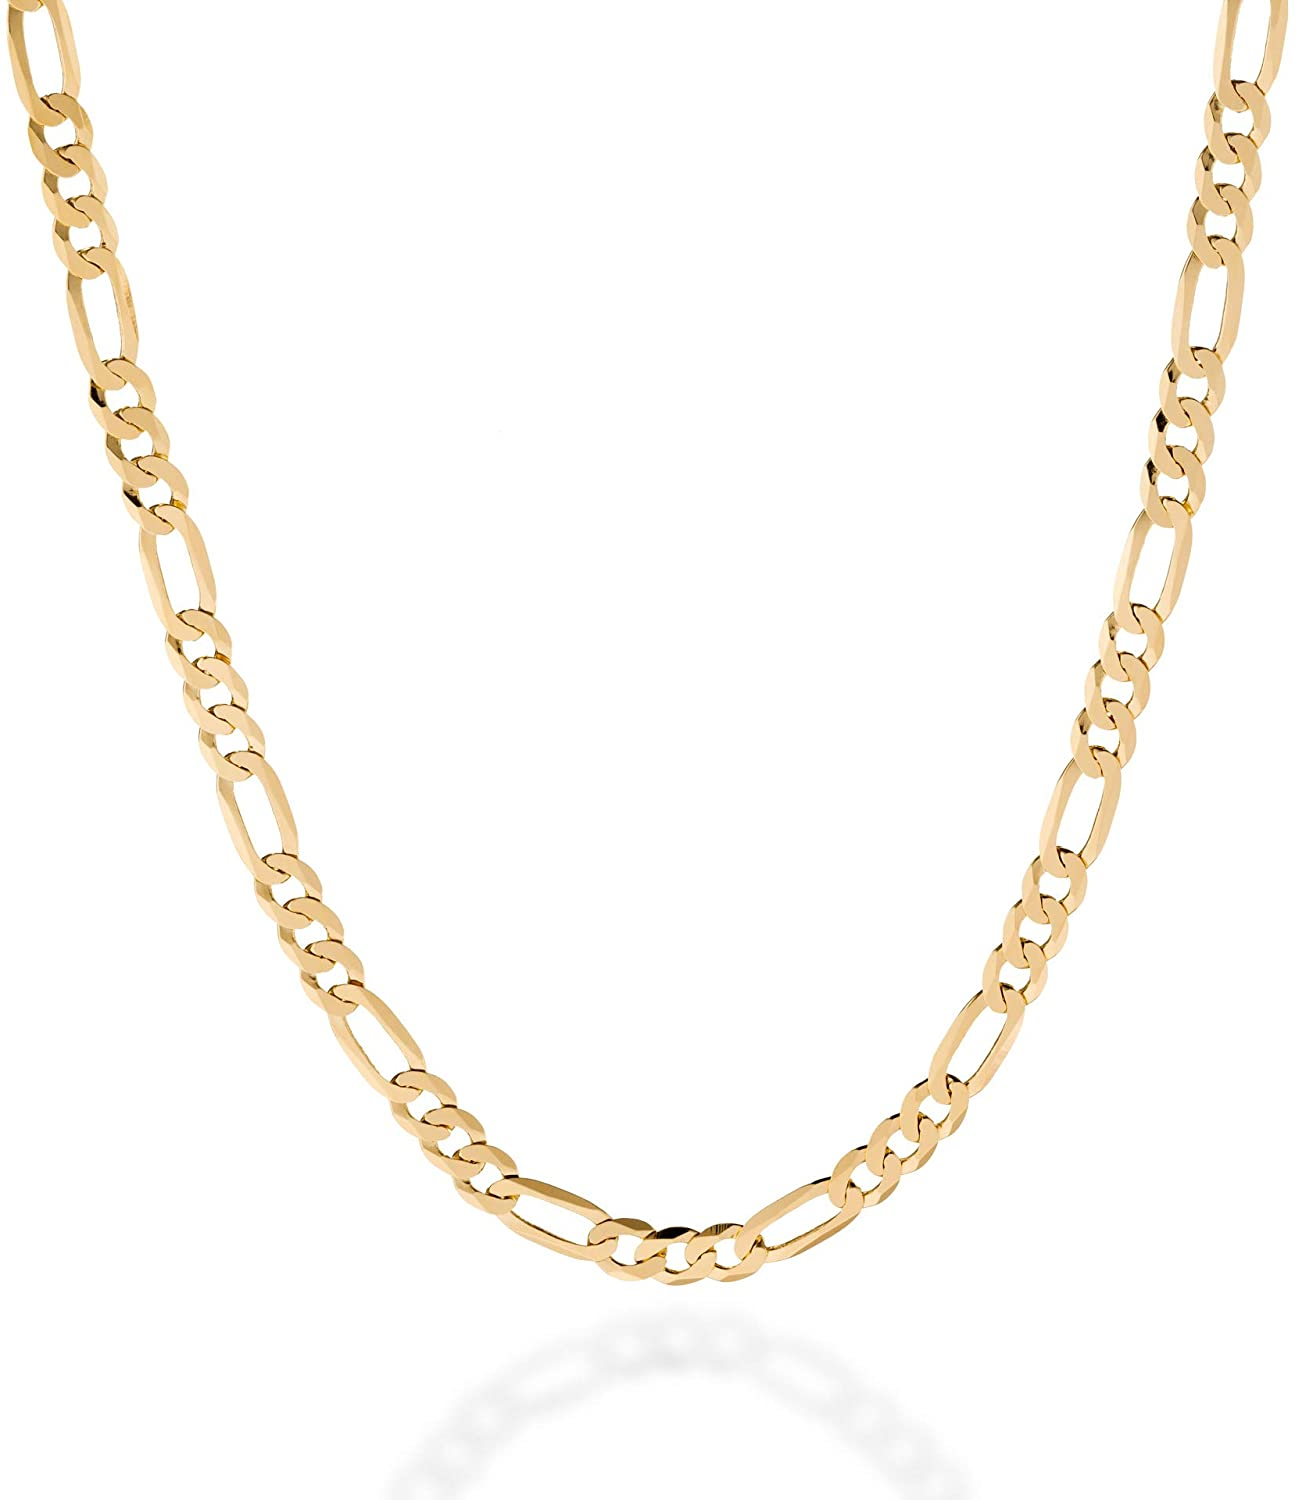 Quadri - 18K Gold Plated over 925 Sterling Silver 5MM Figaro Link Chain Necklace 16-30 Inch Made in Italy